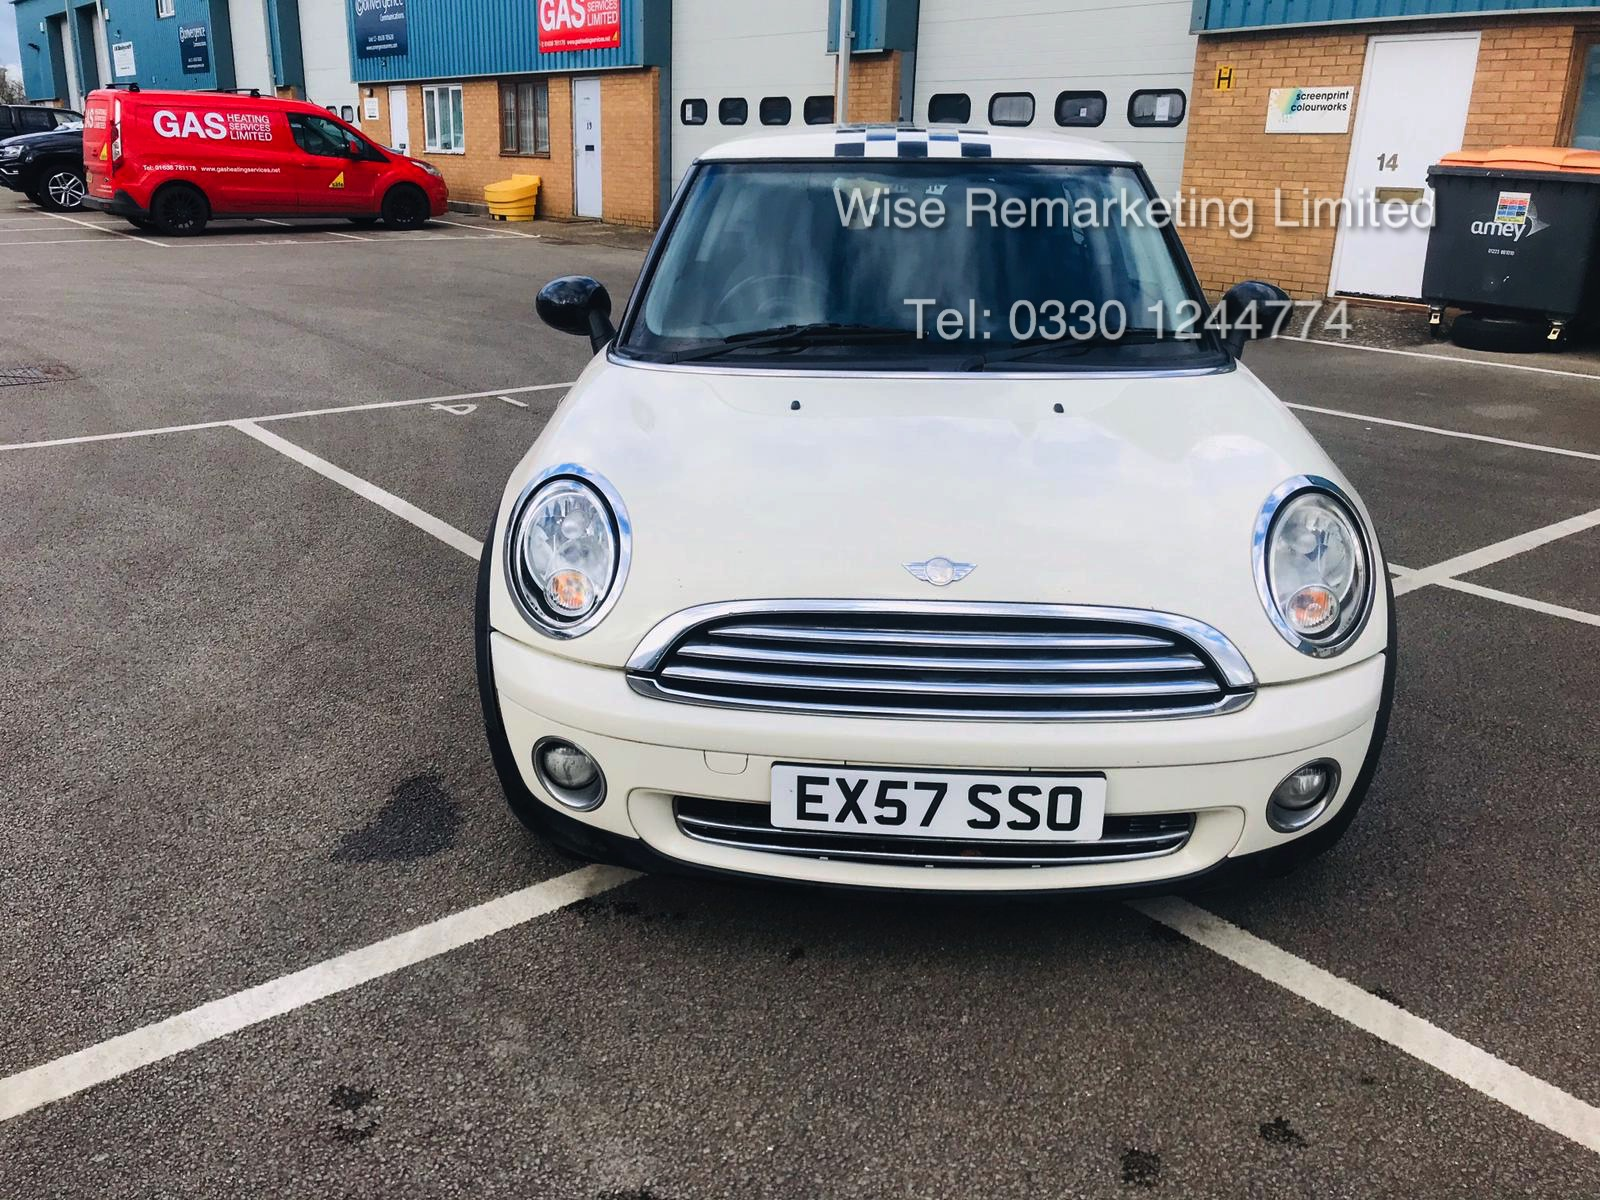 (RESERVE MET) Mini Cooper 1.4l One - 2008 Model - Service History - Air Con - White - Image 2 of 23